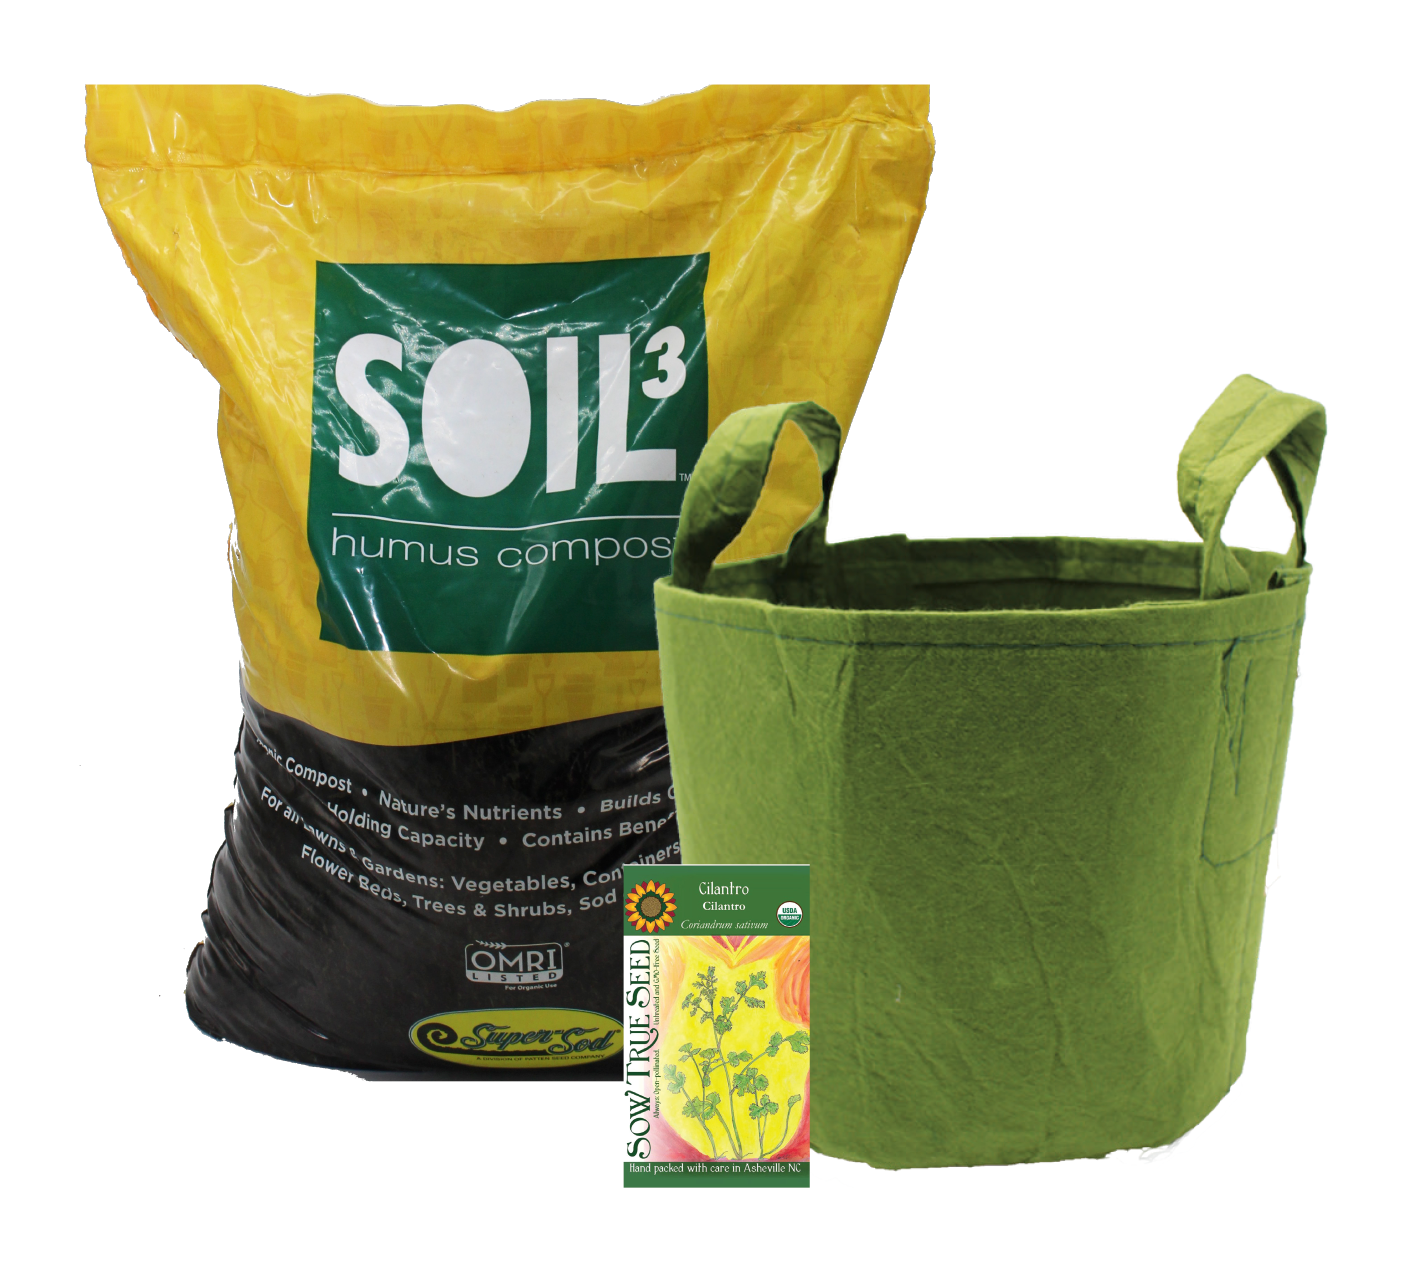 Let's Grow Together: Soil3 Grow Bag Kit Fundraiser - featured image